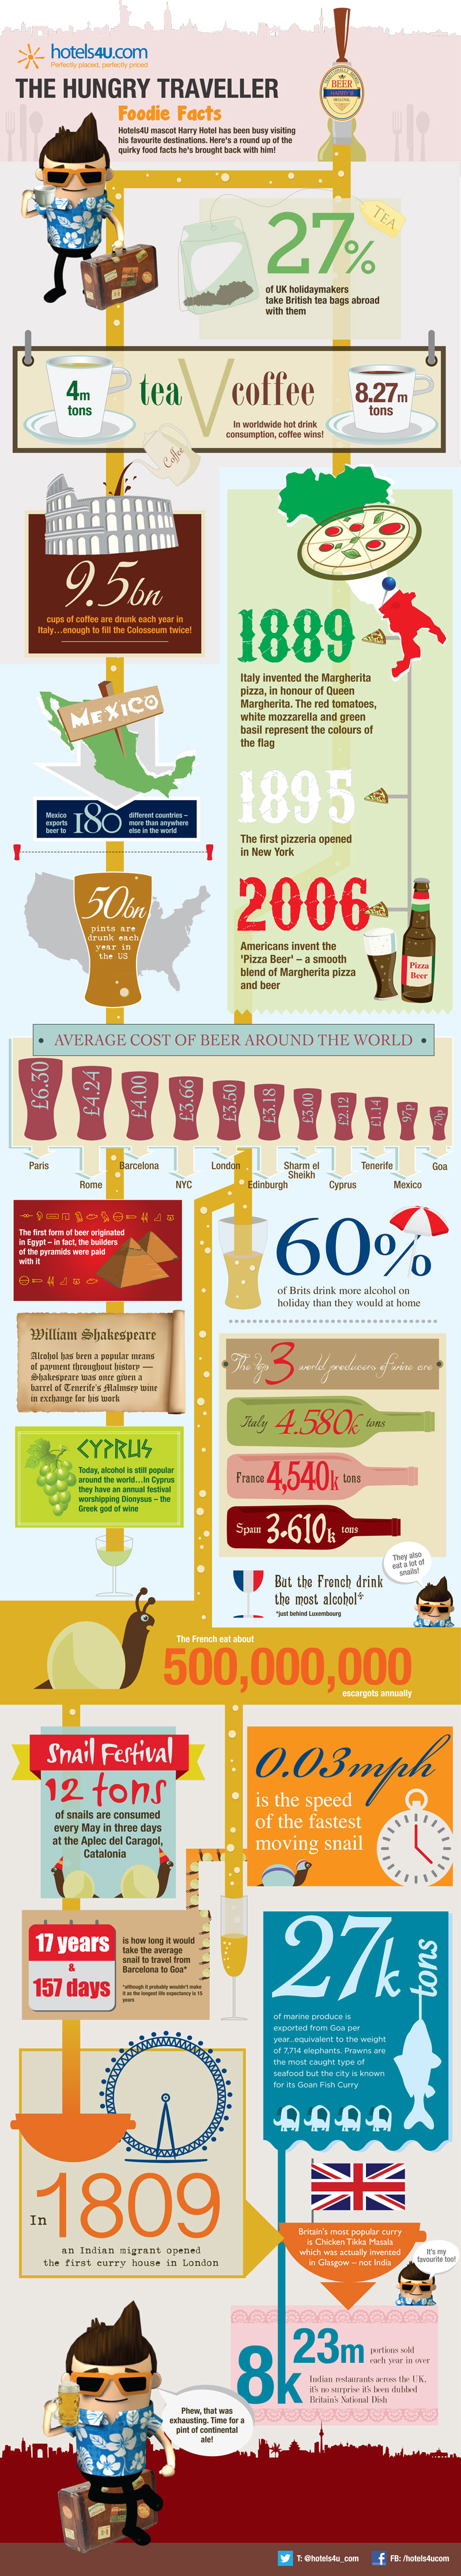 the-hungry-traveller-foodie-facts_50d08793ecd80